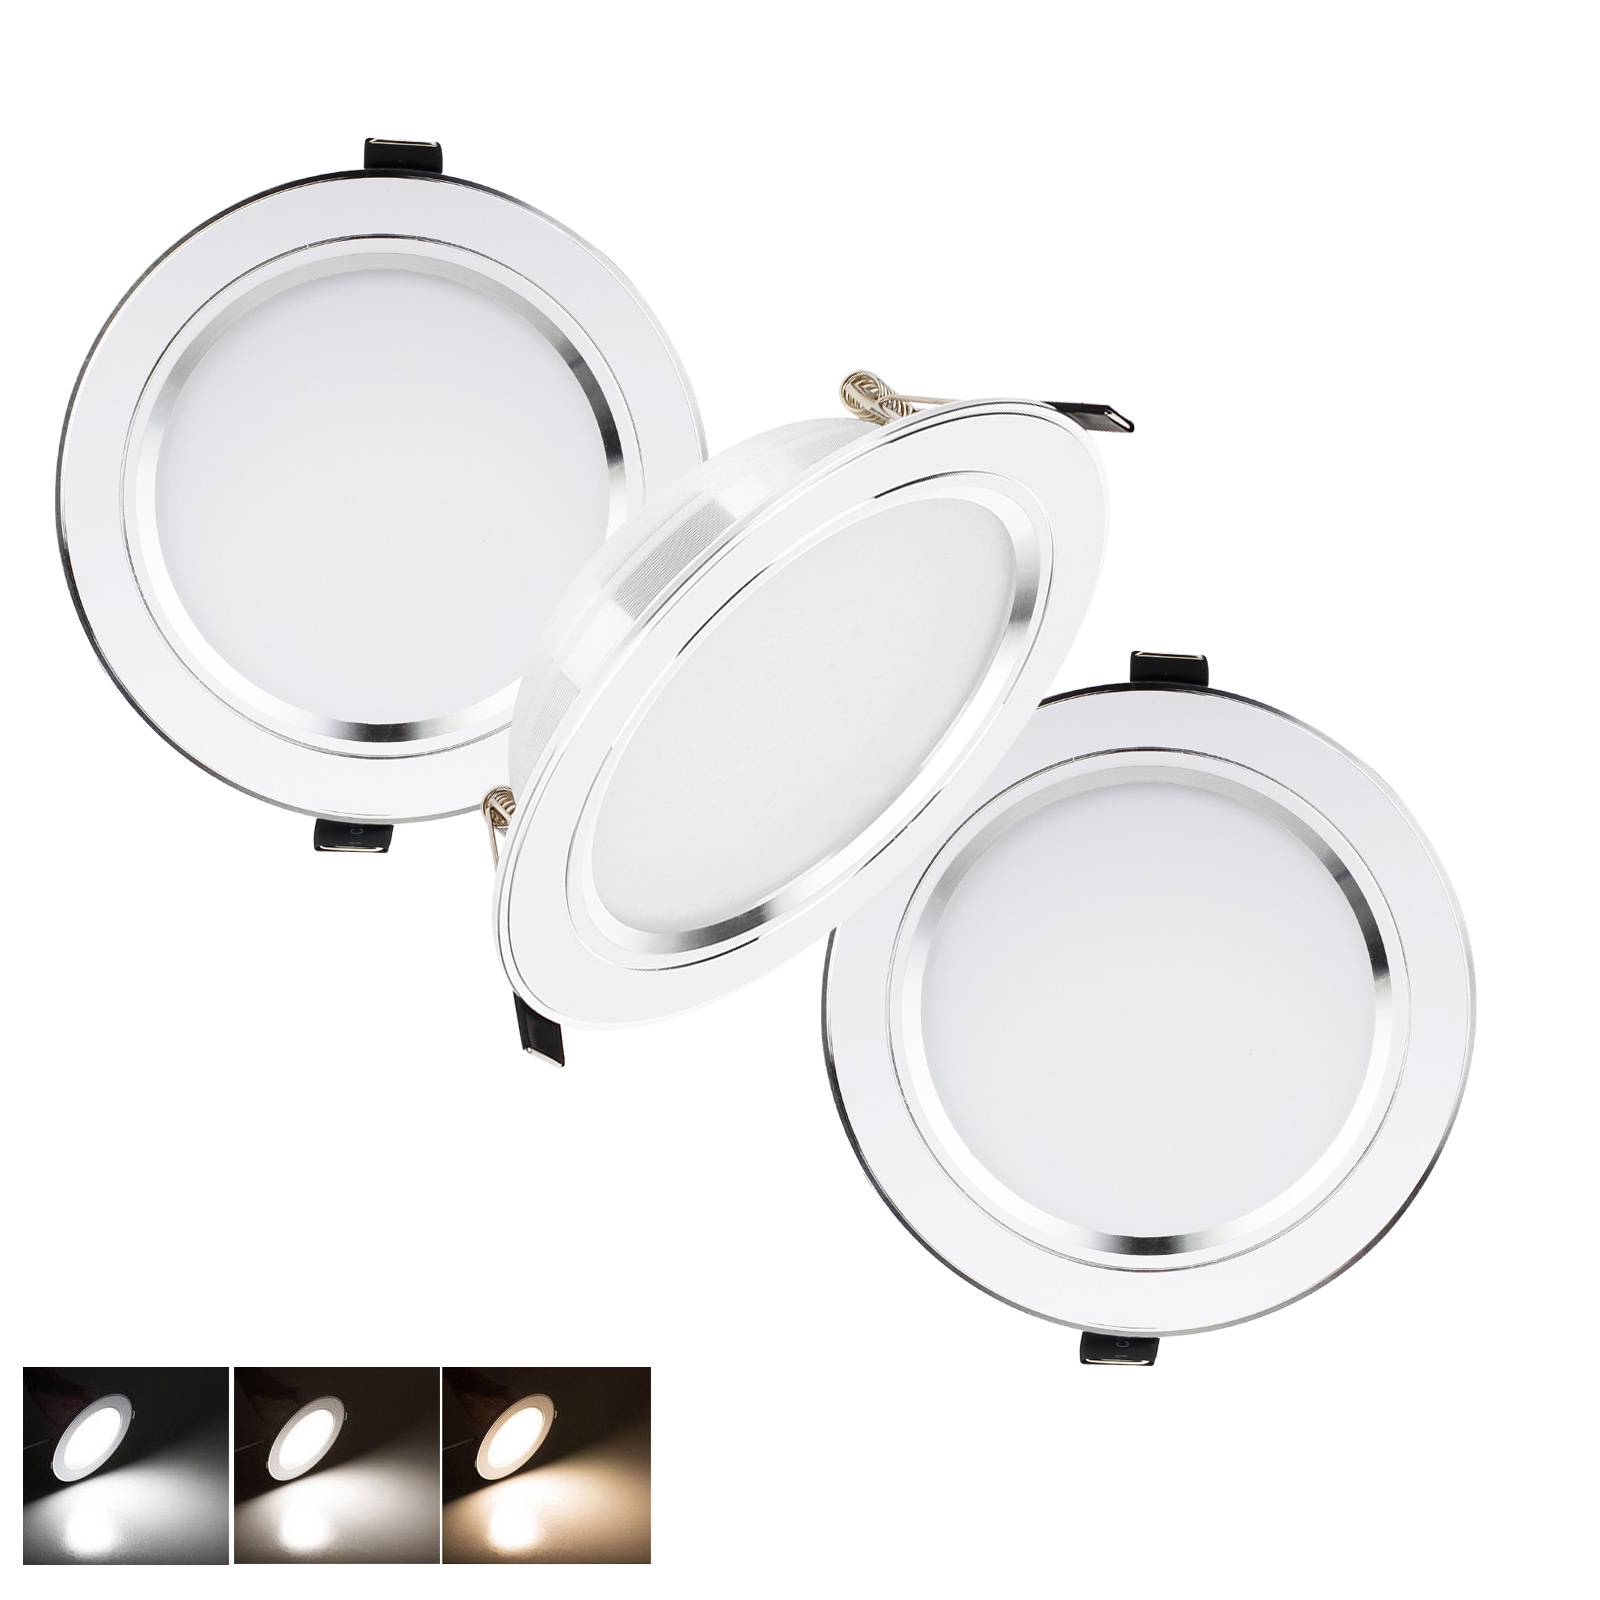 YORYZENG LED Recessed Ceiling Downlight Fixtures 112W 9W 7W 5W 3W Light Lamp 110V 220V With Driver Spot Light Indoor Lighting